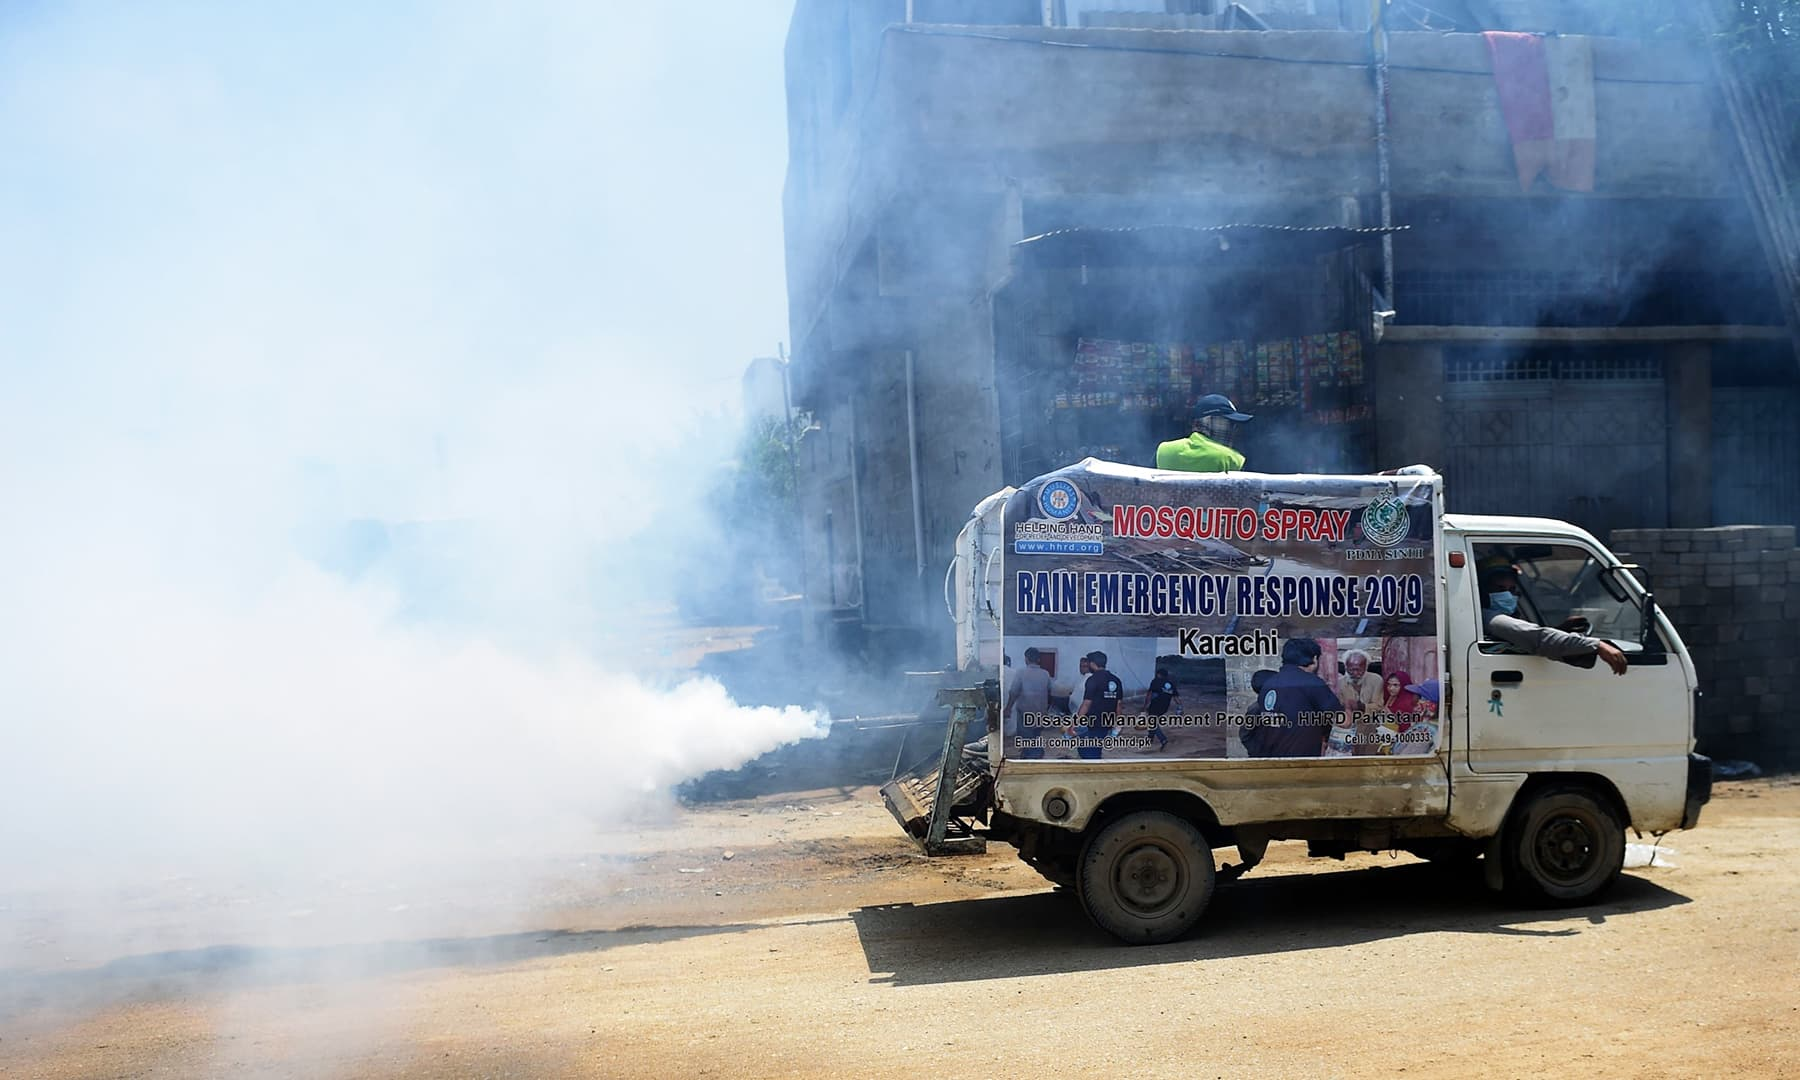 In this picture taken on September 4, municipal workers use a vehicle to fumigate a residential area in Karachi. — AFP